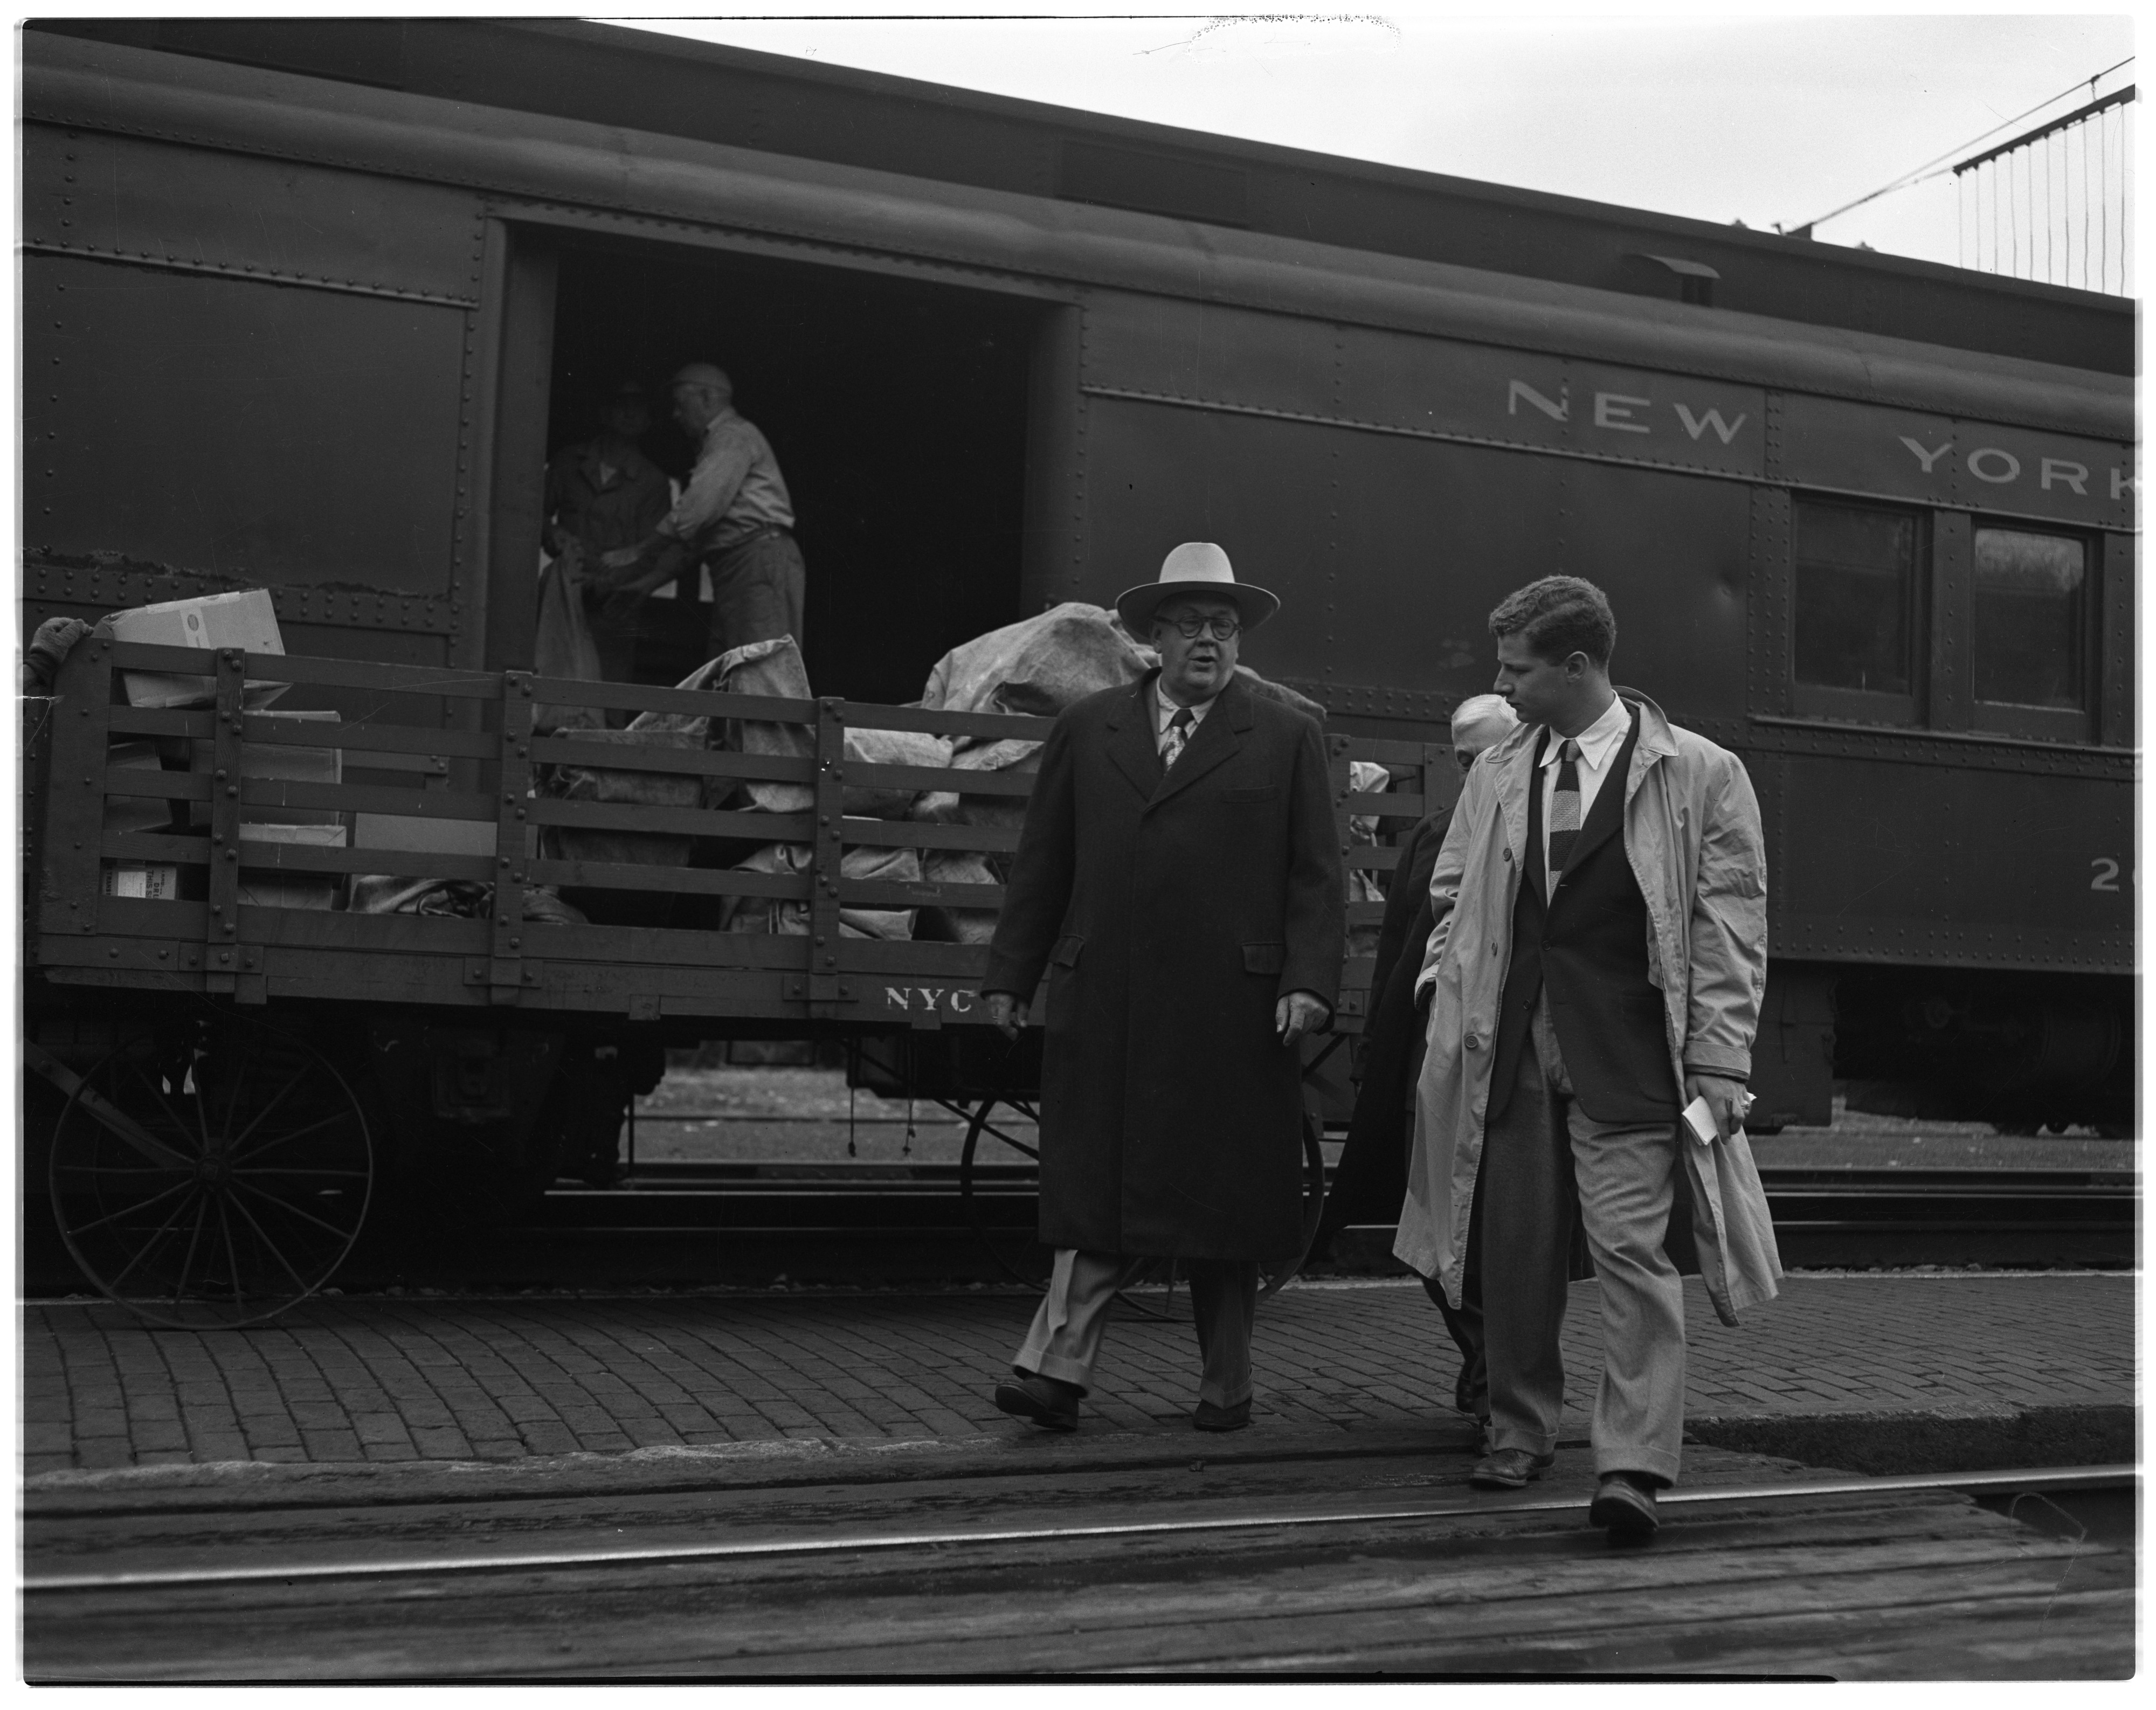 Lauritz Melchior, Tenor, Arrives in Ann Arbor, October, 1950 image